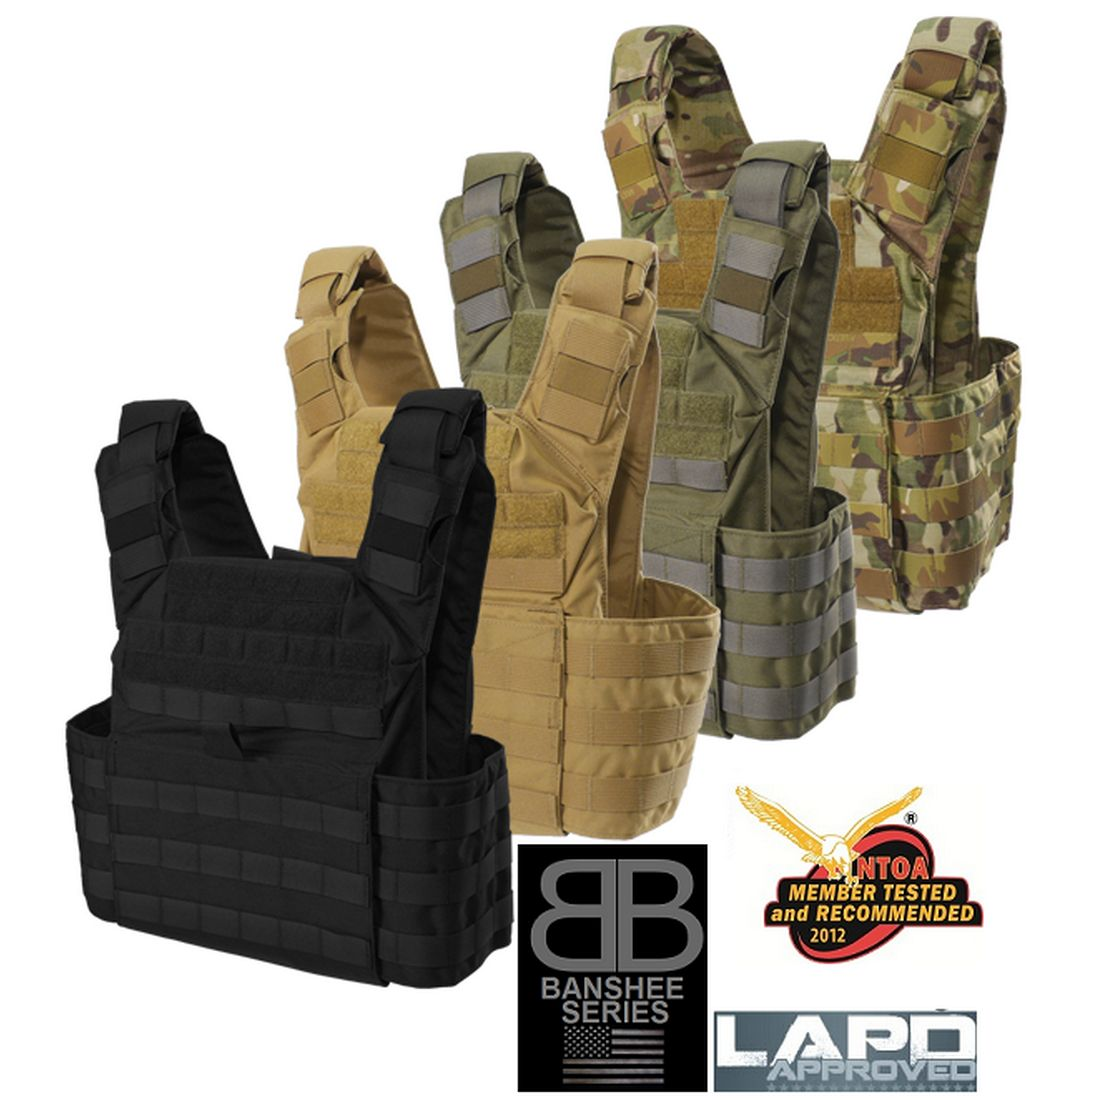 Shellback Tactical Banshee Rifle Plate Carrier - Main